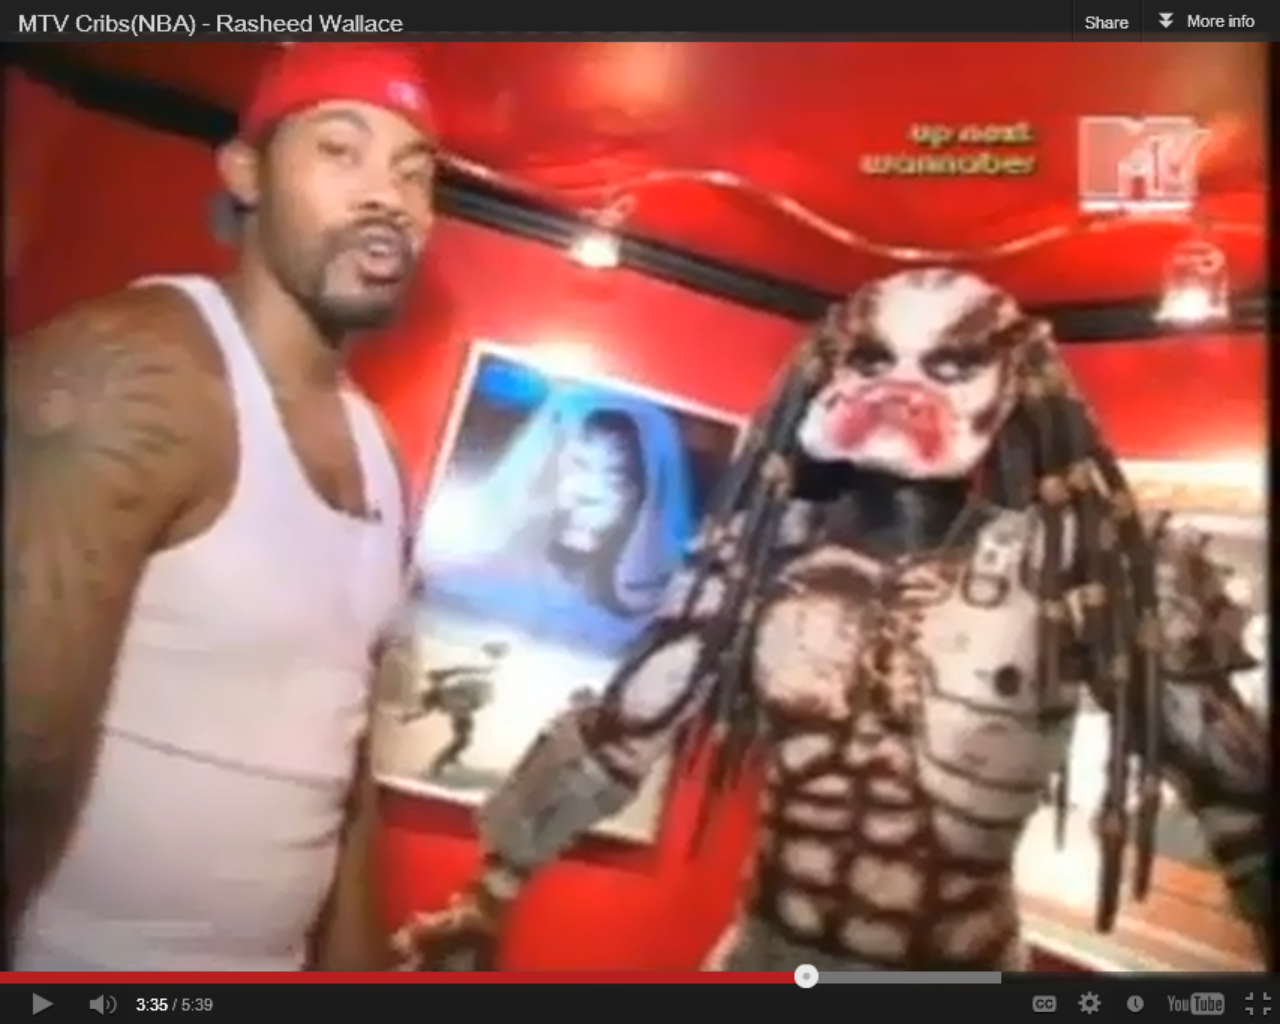 RASHEED WALLACE HAS A GIANT PREDATOR STATUE AND EPISODE I POSTER